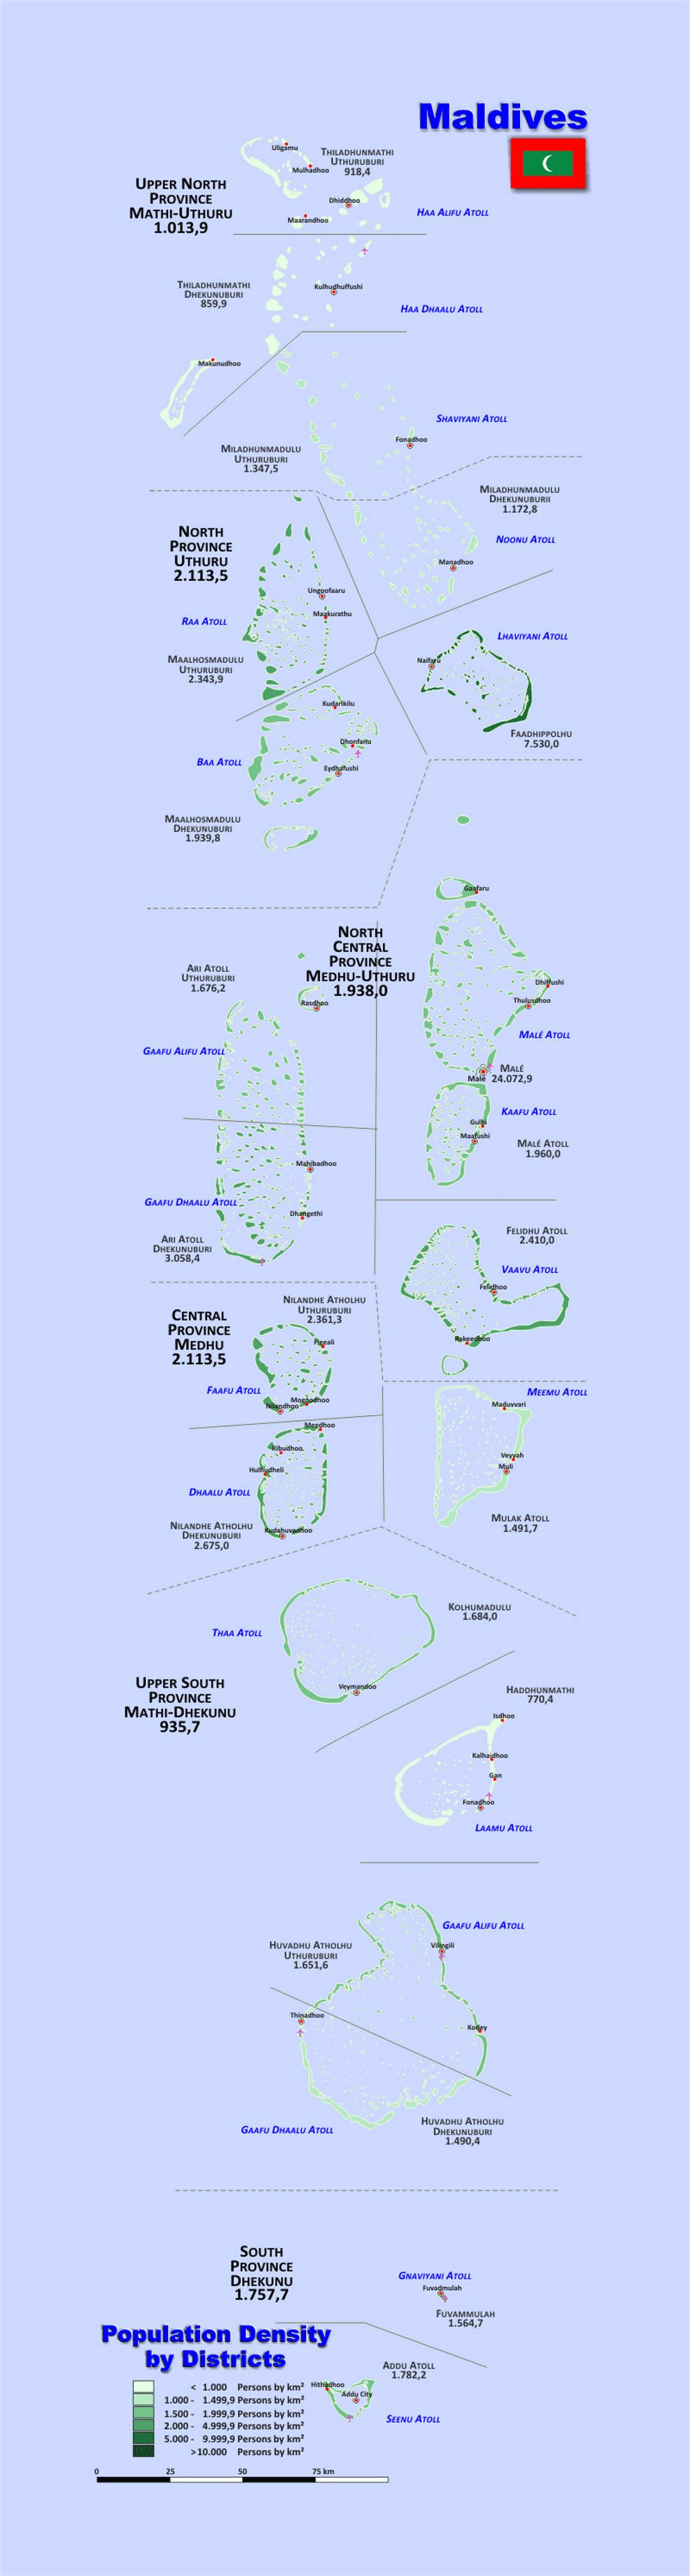 Detailed population density by districts map of Maldives